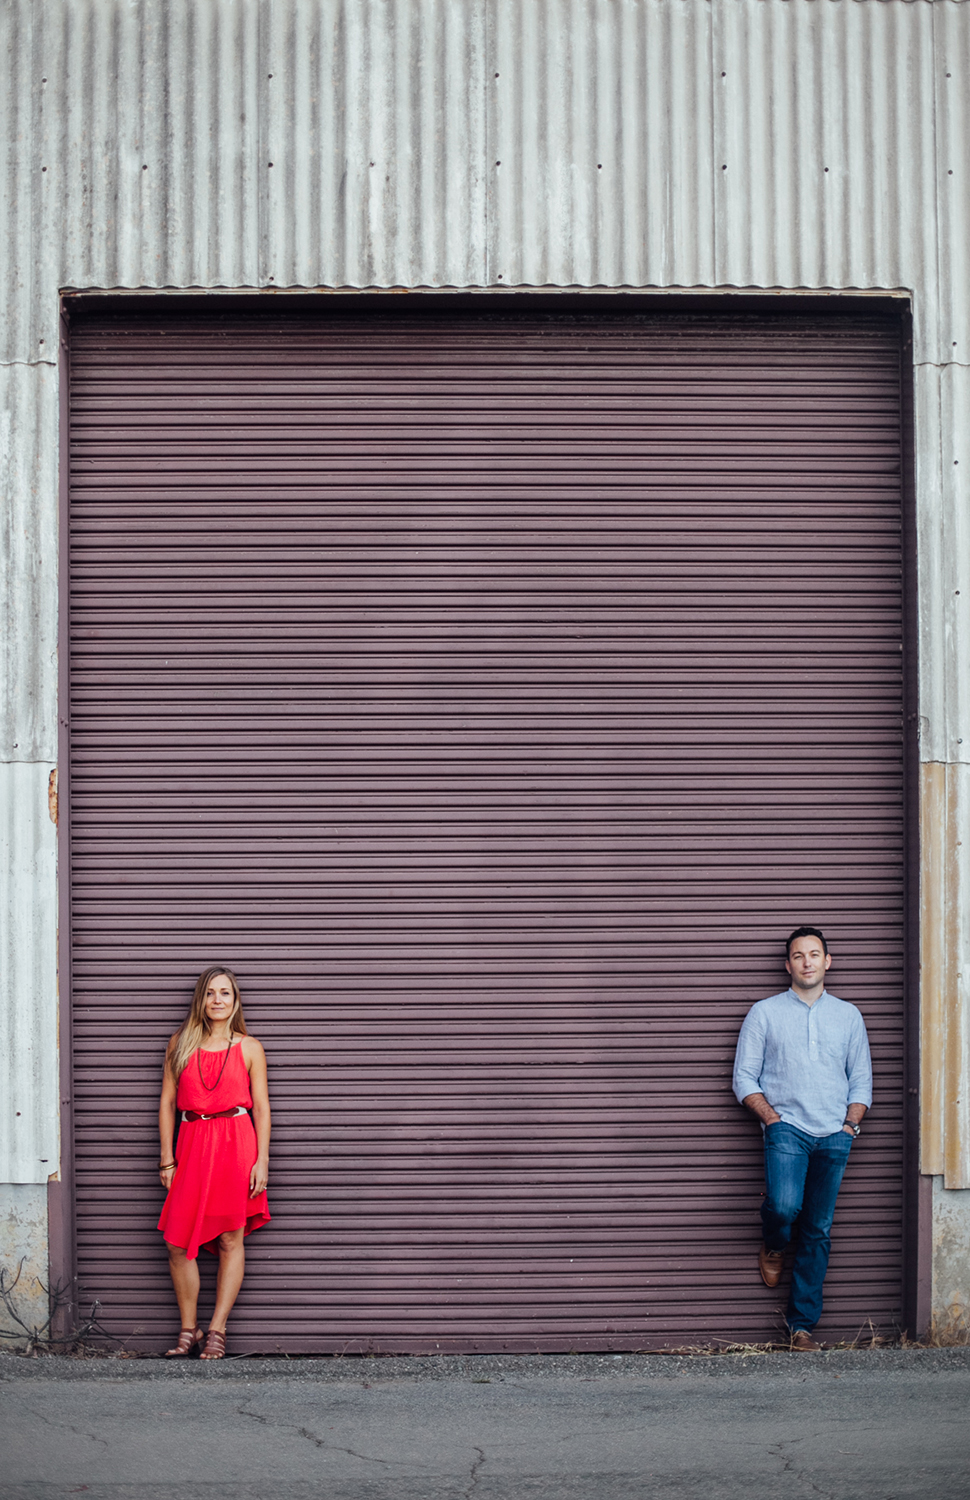 san-francisco-bay-area-engagement-photo-11.html